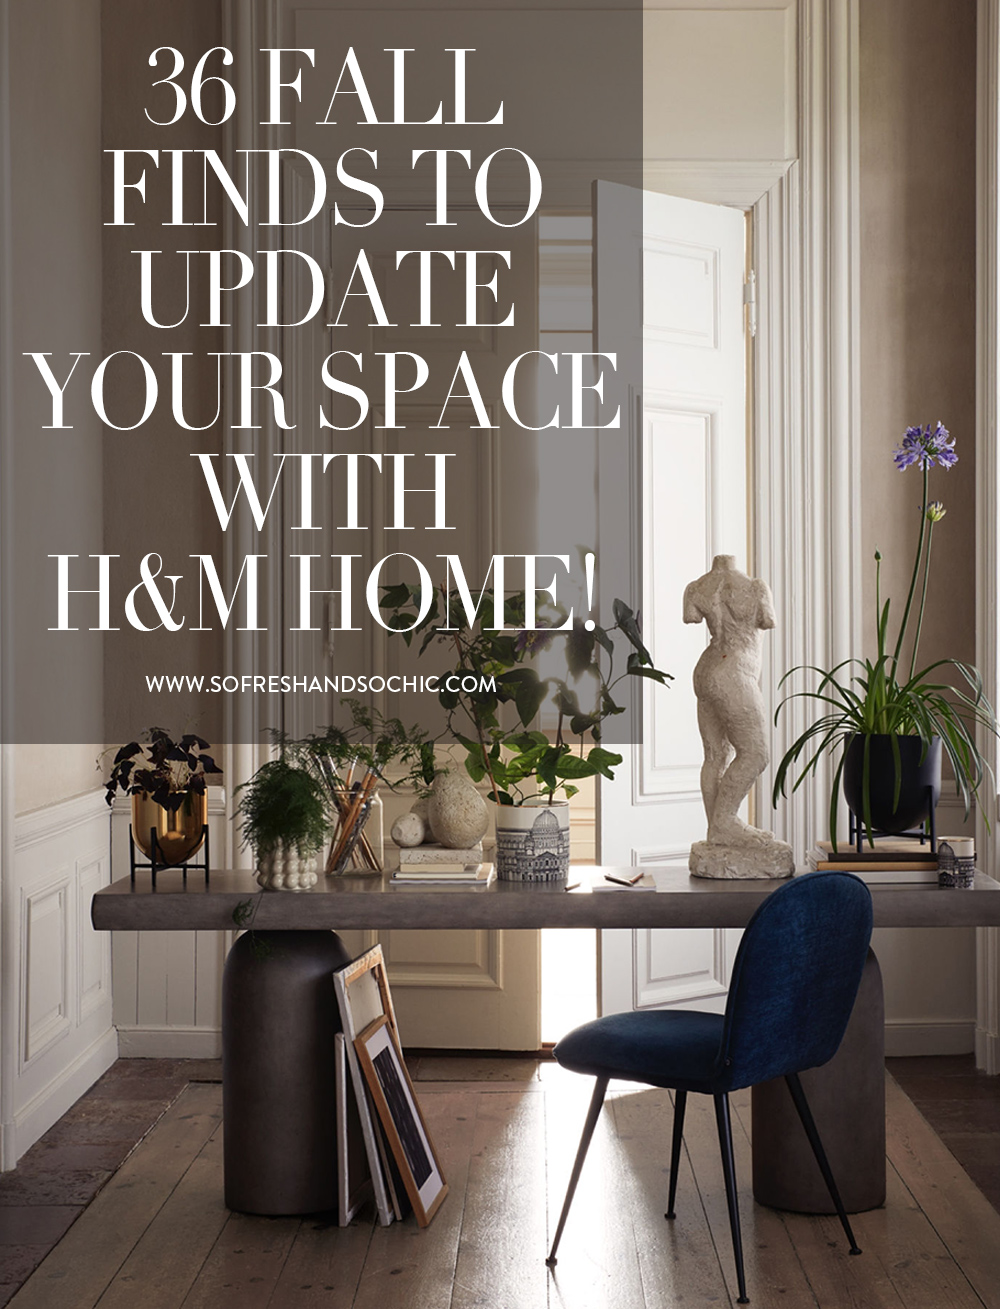 The Best of H&M Home This Fall! #homedecor #interiordesign #h&mhome